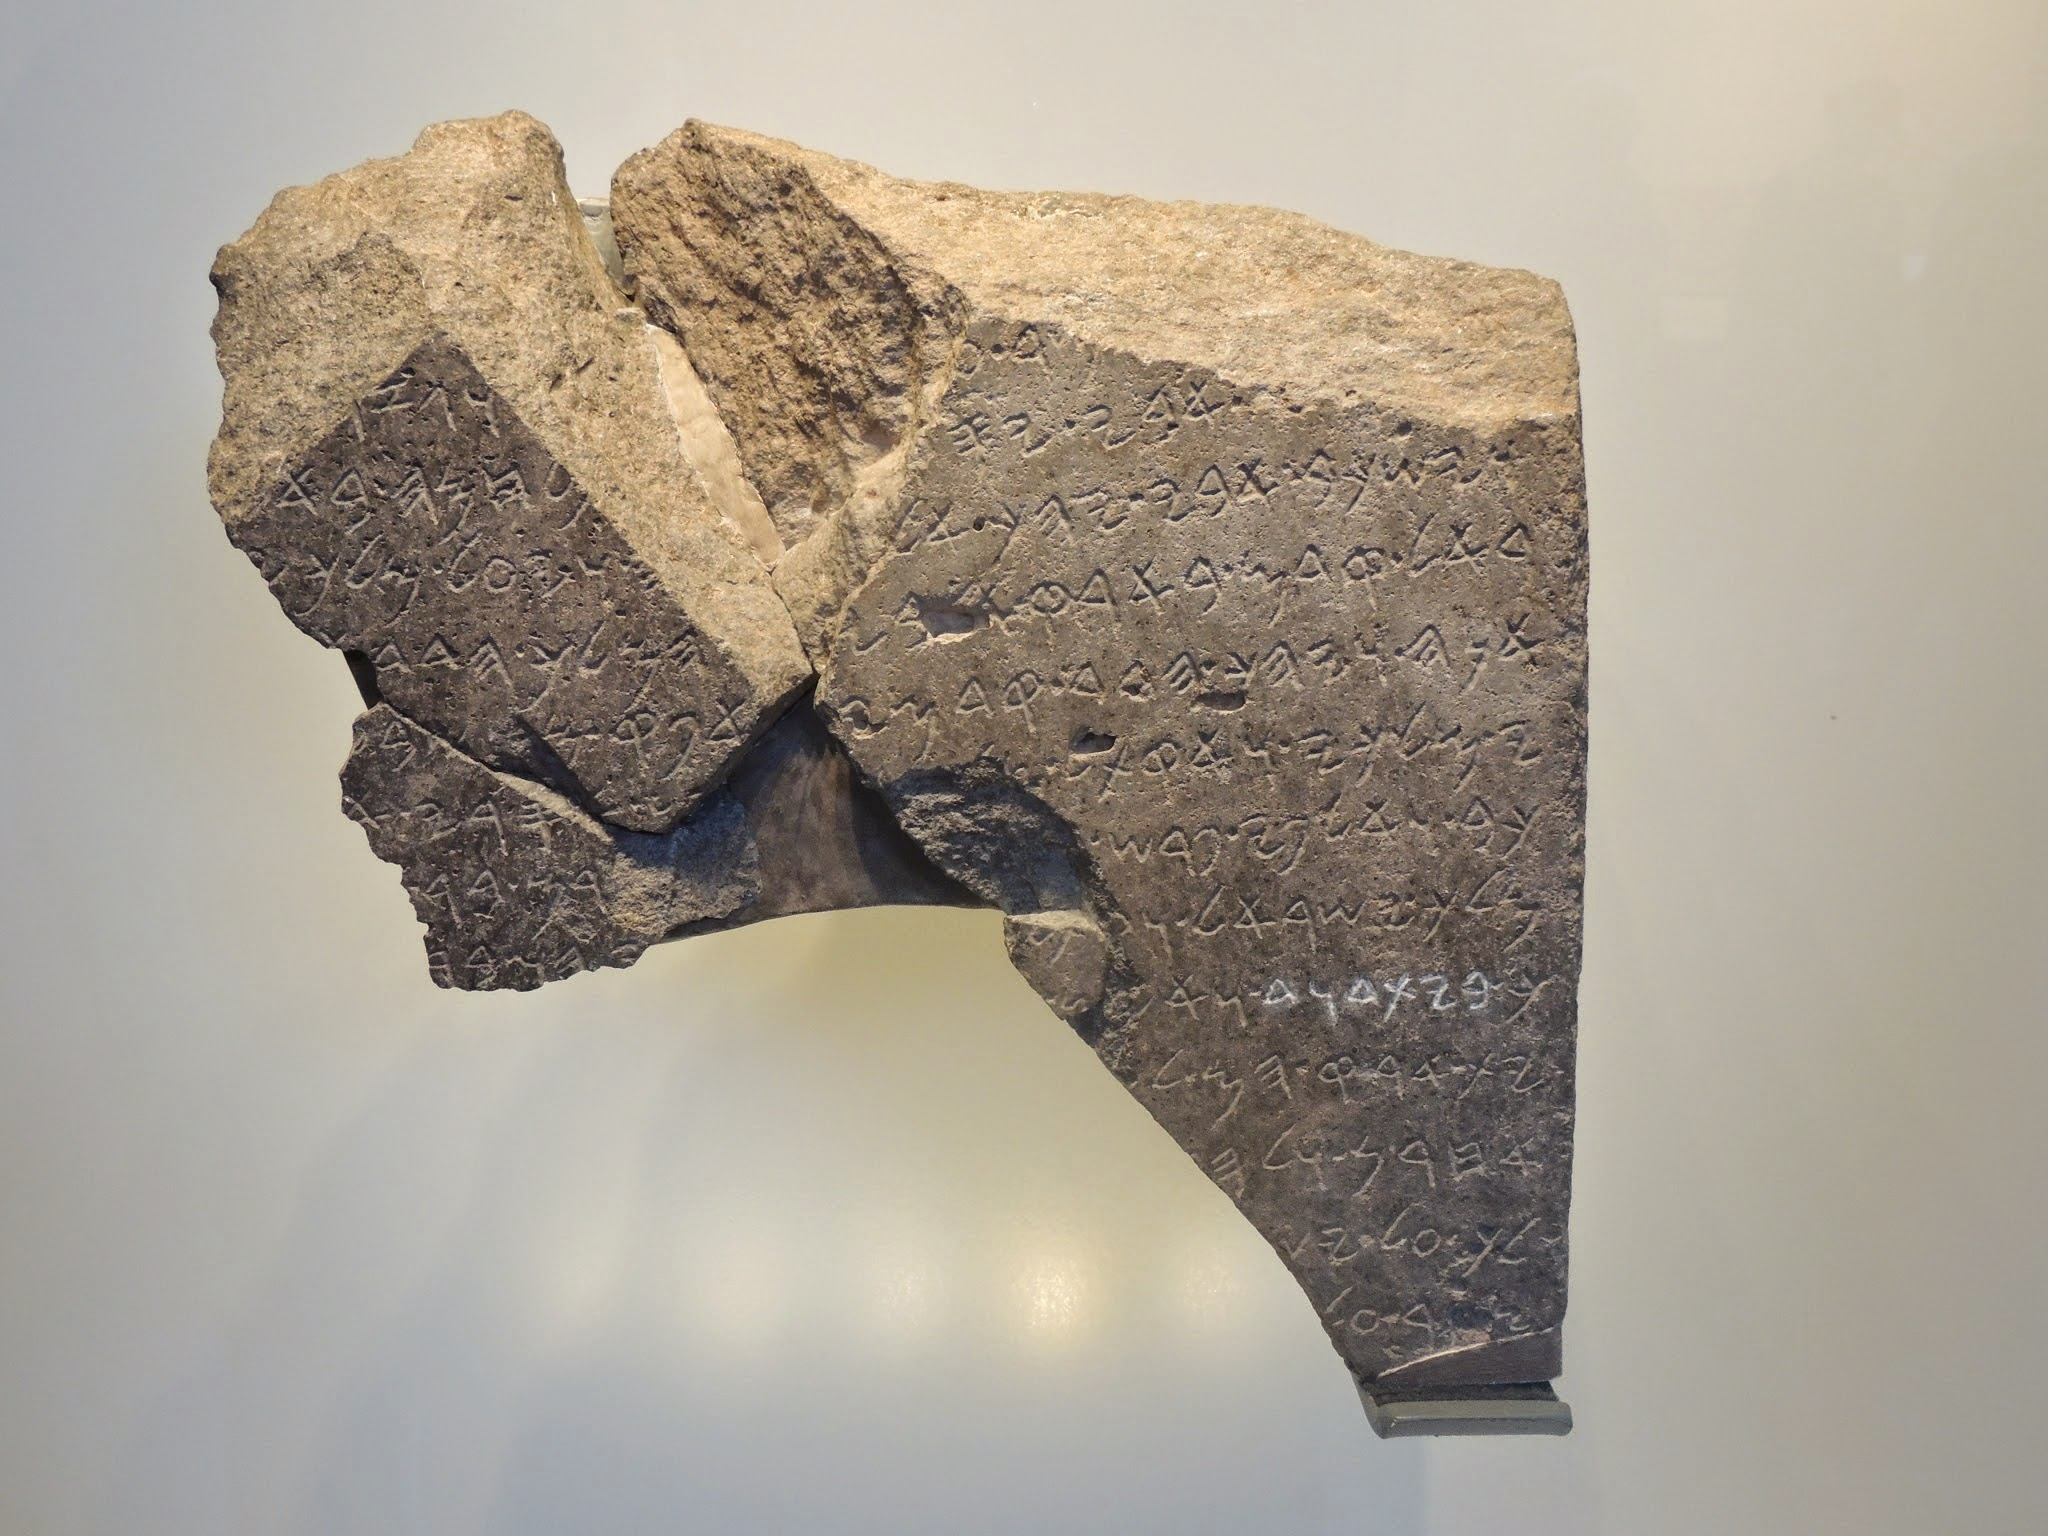 The Tel Dan Stele.  Photograph taken at the Israel Museum in Jerusalem by Barry Britnell.